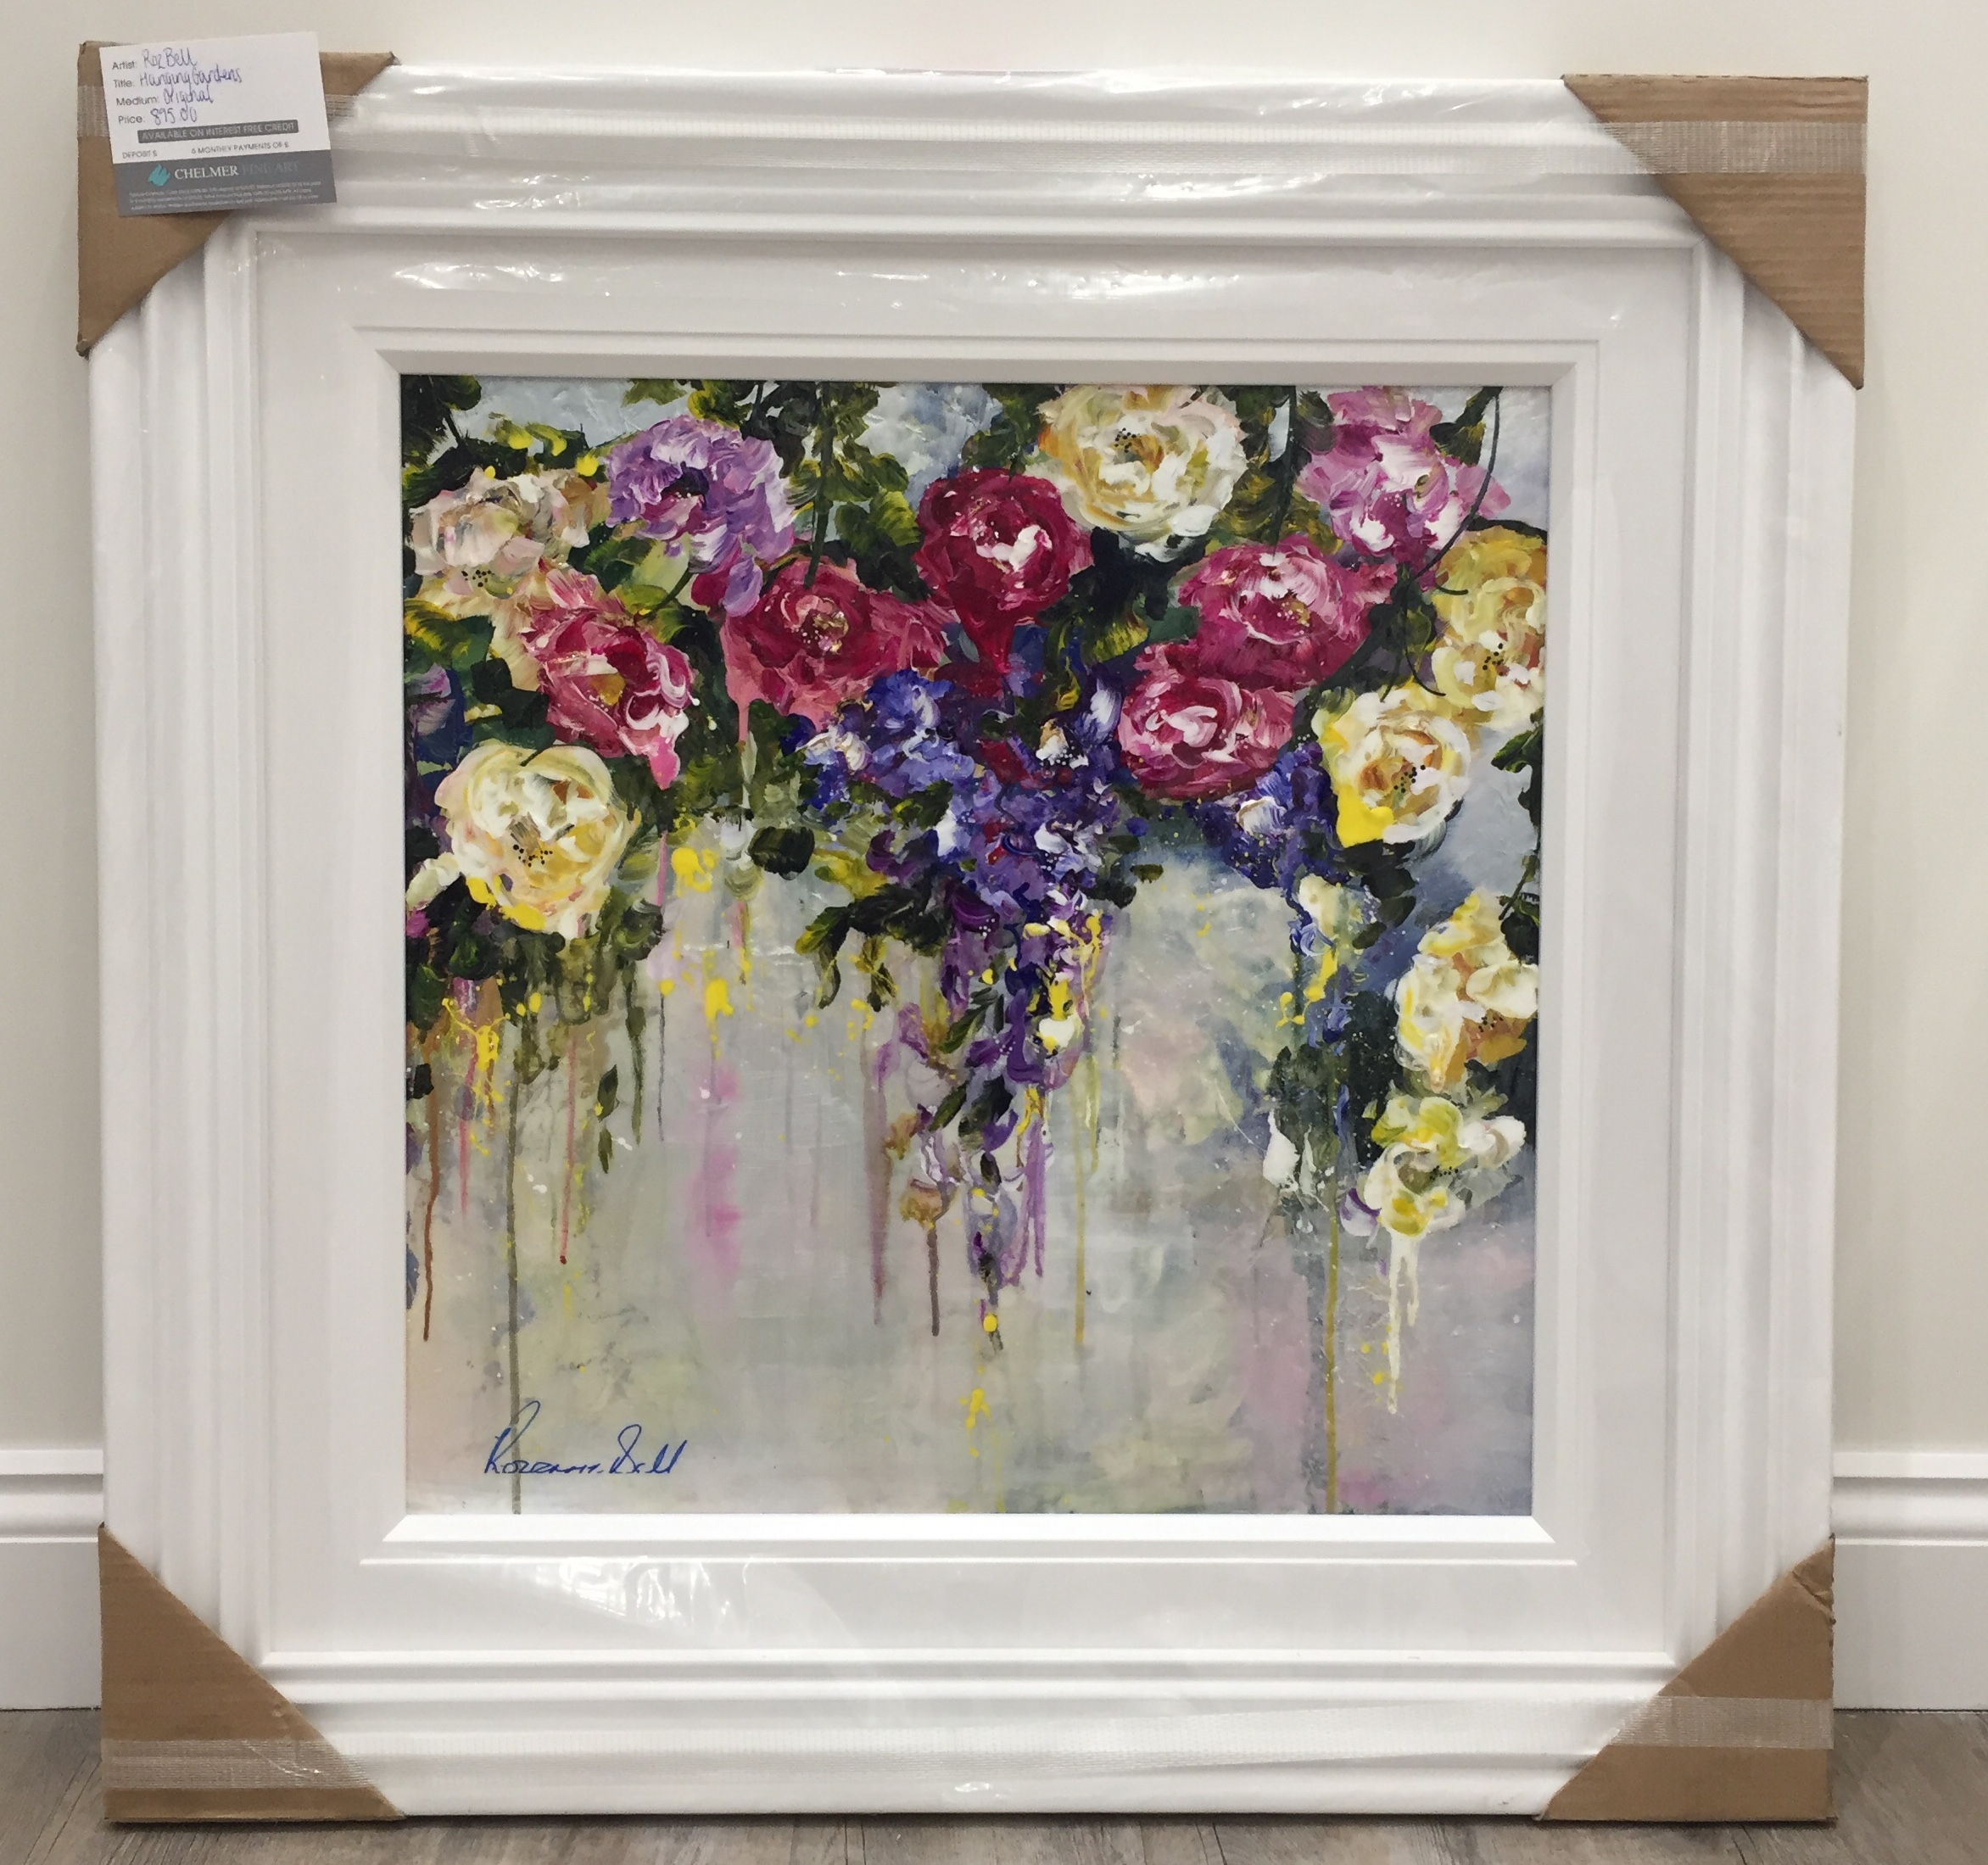 Hanging Garden 24 x 24 by Roz Bell